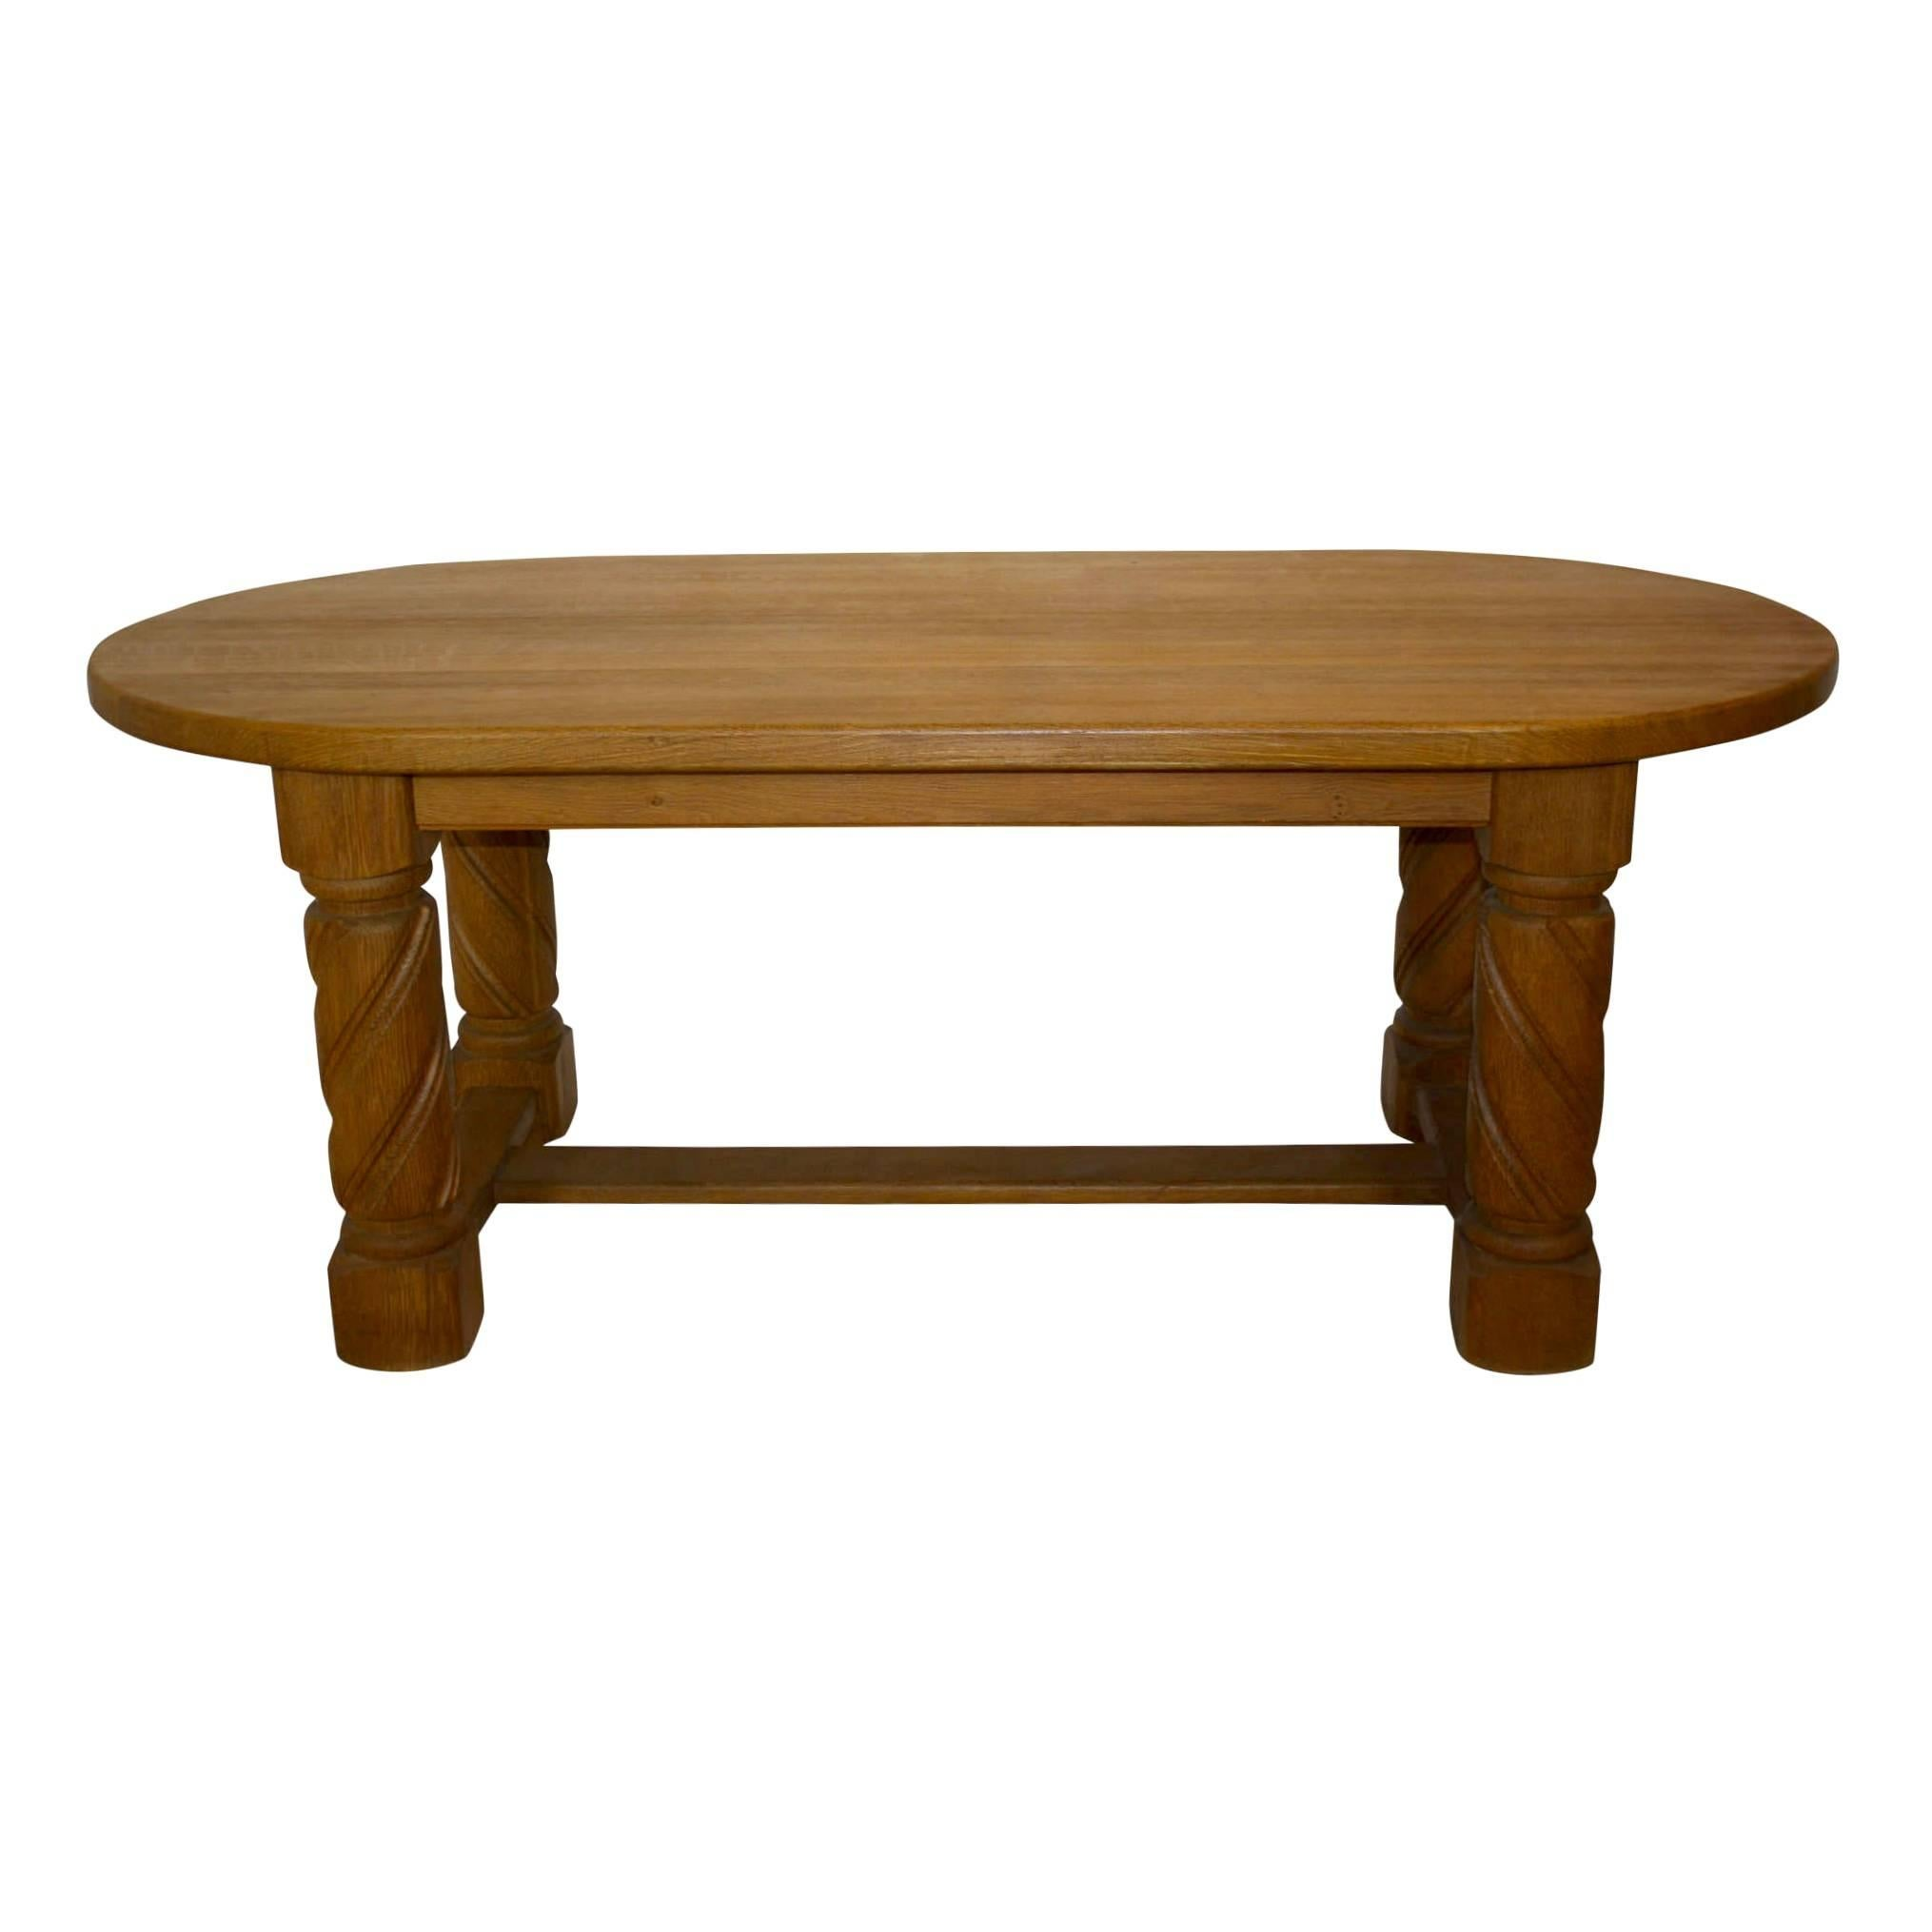 Rustic Oak Dining Table, circa 1920